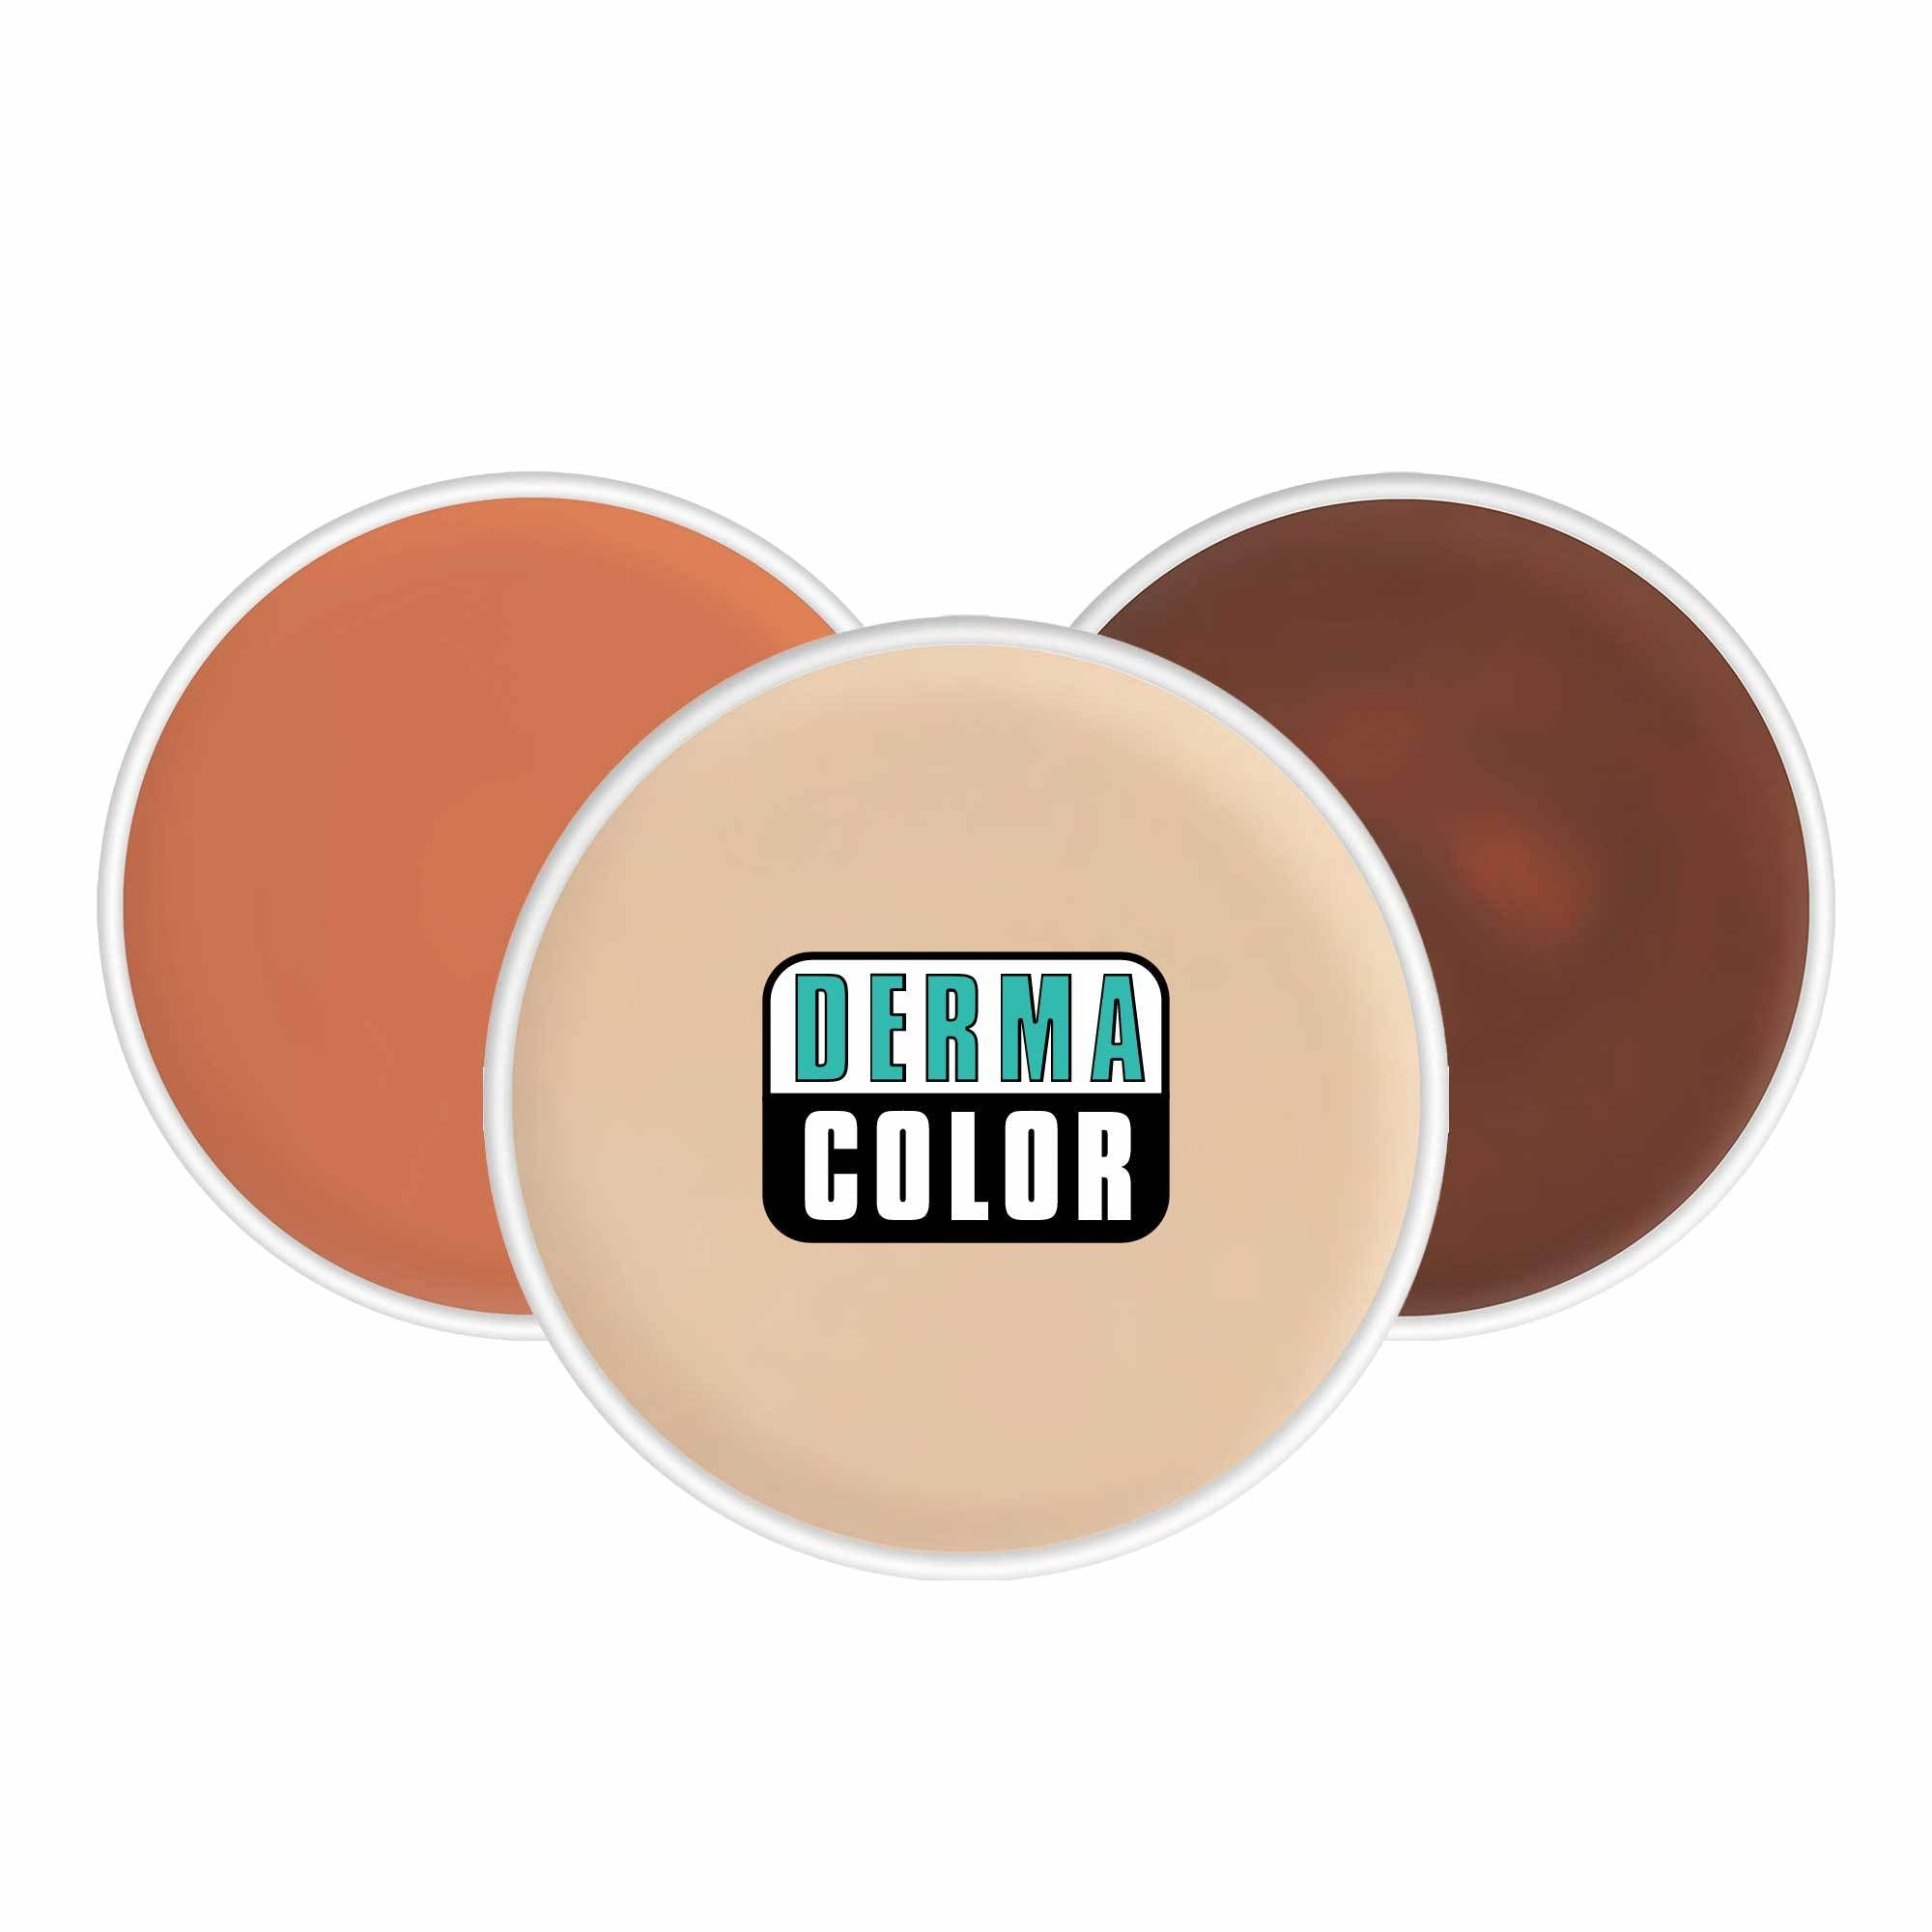 DermaColor Camouflage Creme Colour - D30 - Red Carpet FX - Professional Makeup